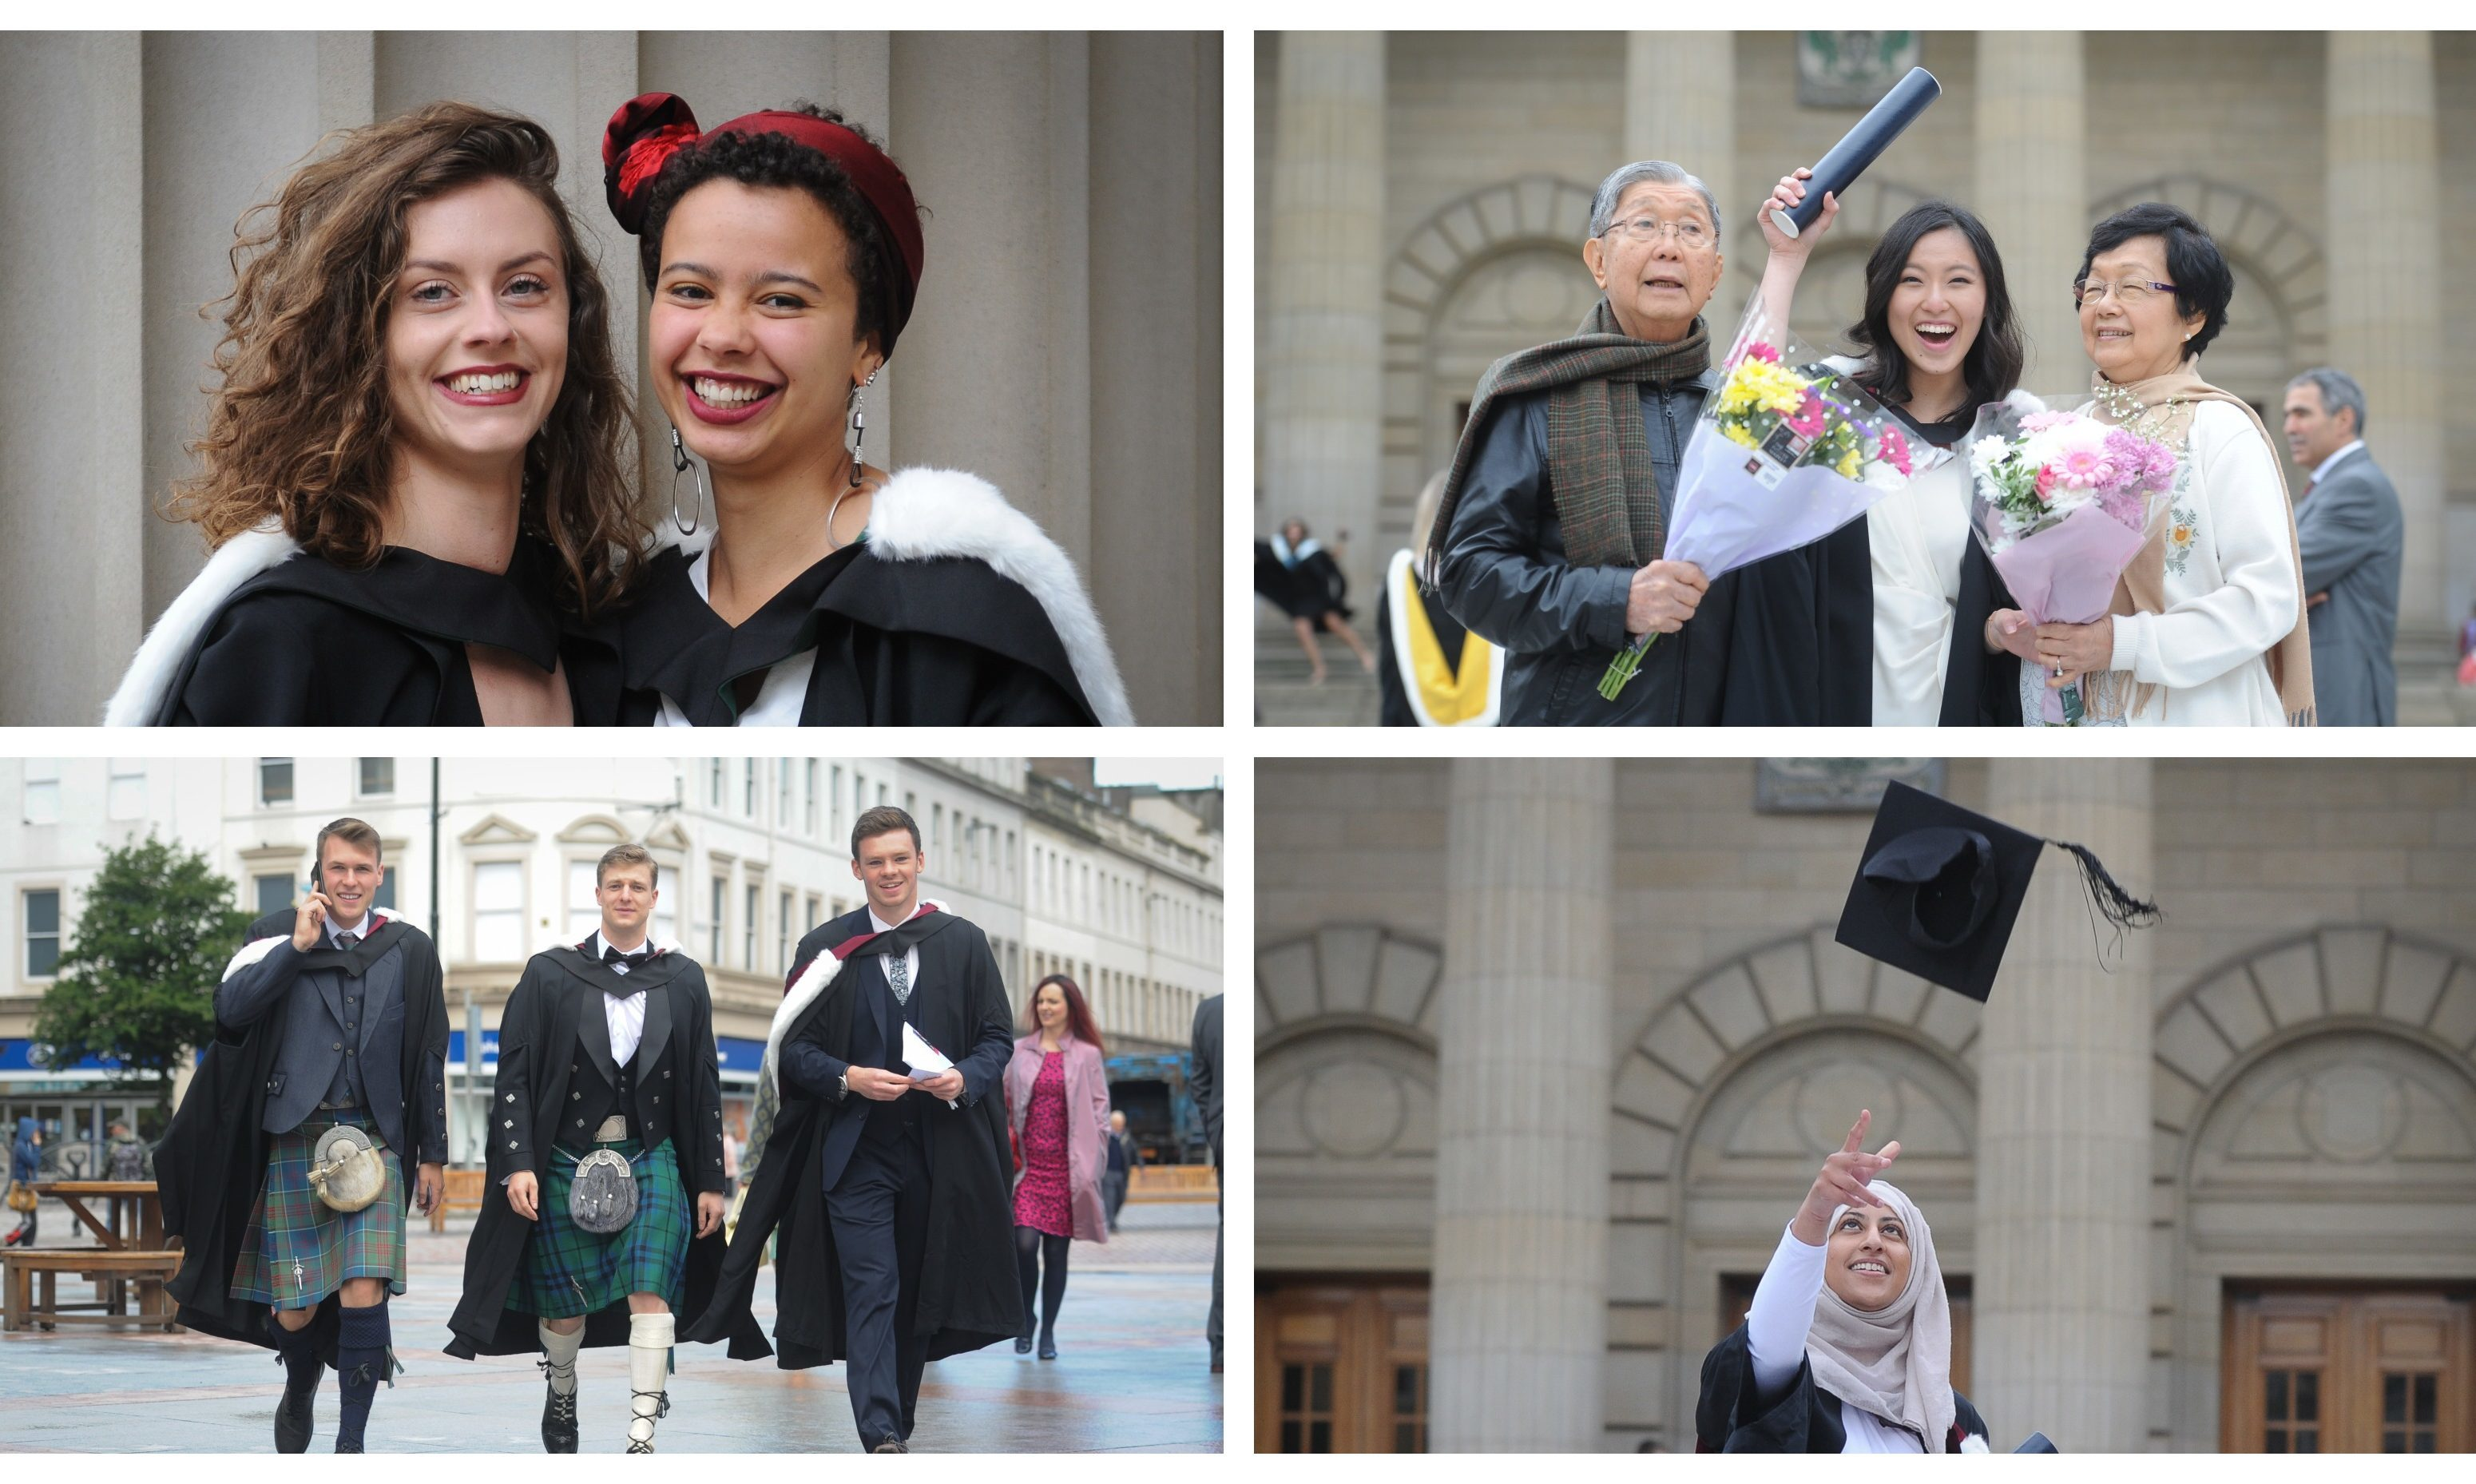 Wednesday saw the first Dundee University graduation ceremonies get under way.